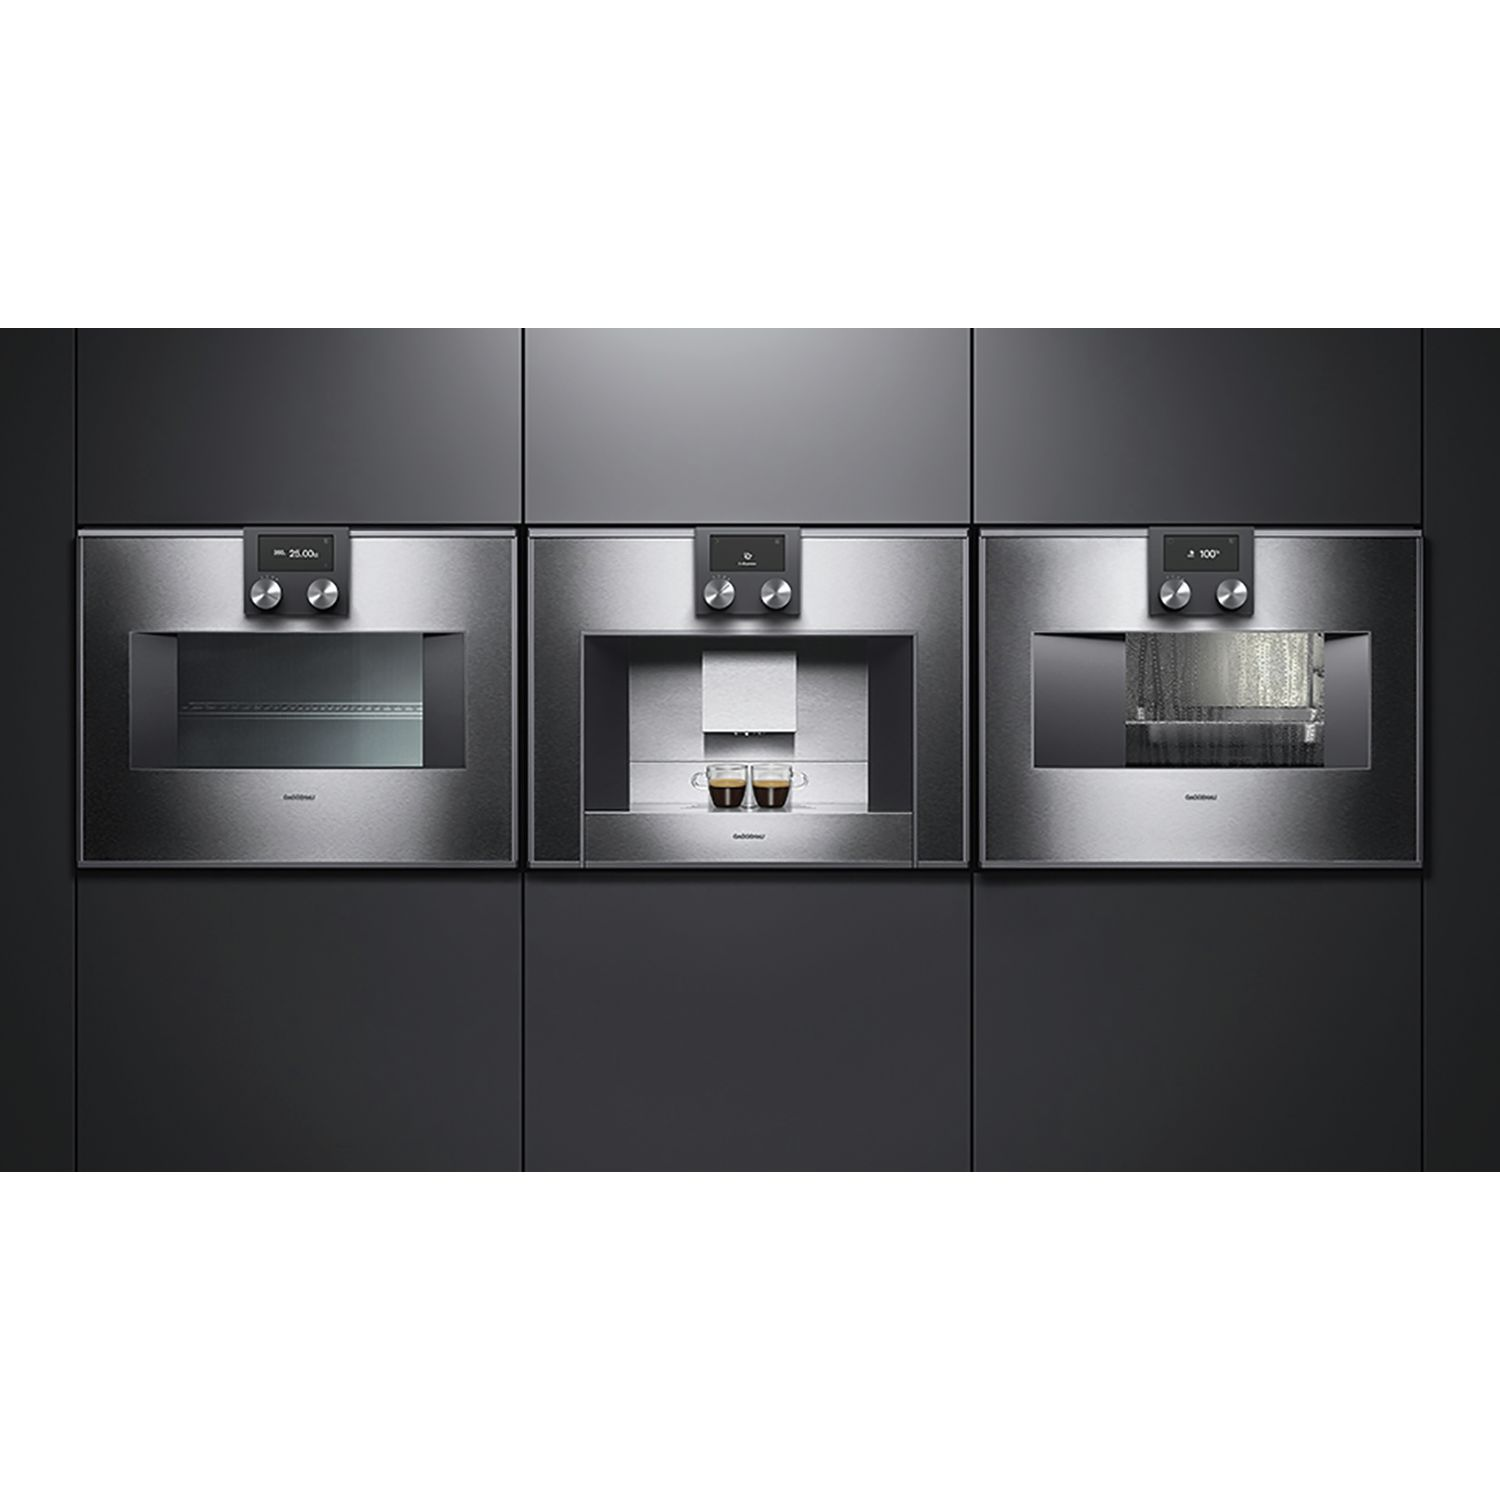 gaggenau dampfbackofen bs471111 edelstahl bedienung oben t ranschlag links. Black Bedroom Furniture Sets. Home Design Ideas